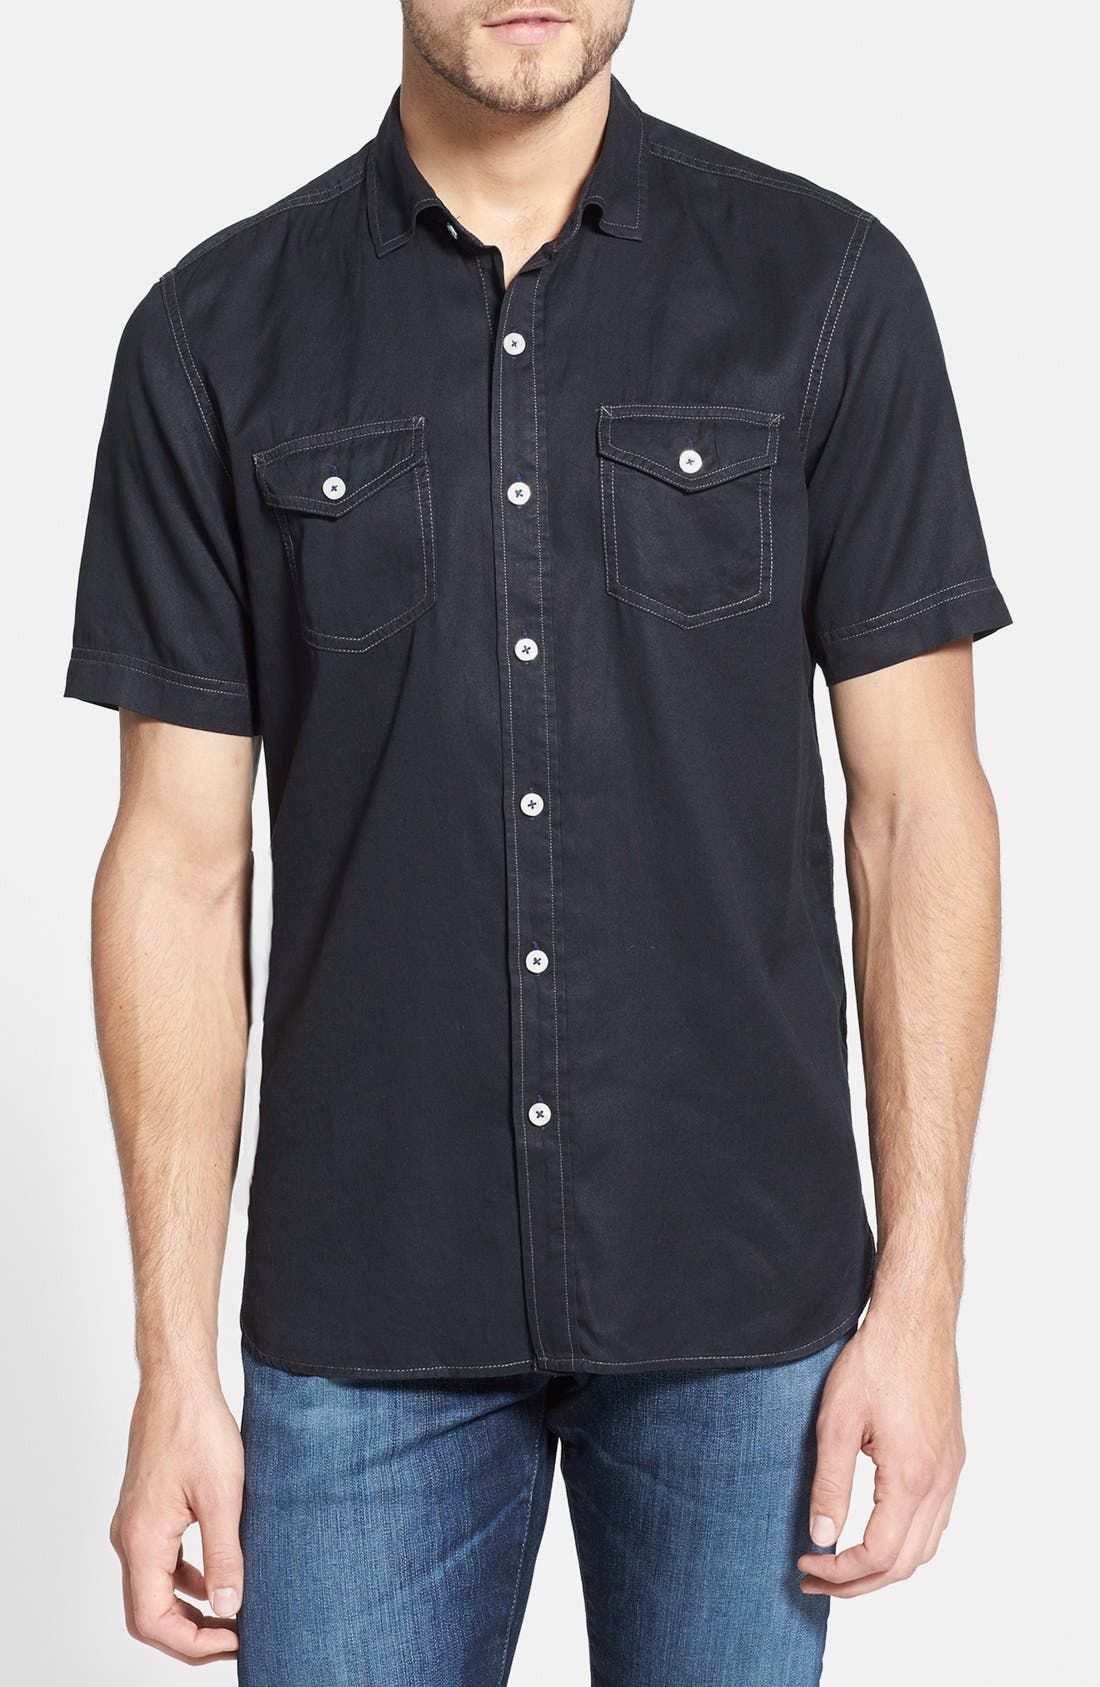 Alternate Image 1 Selected - Tommy Bahama Denim 'Twilly Junior' Island Modern Fit Sport Shirt